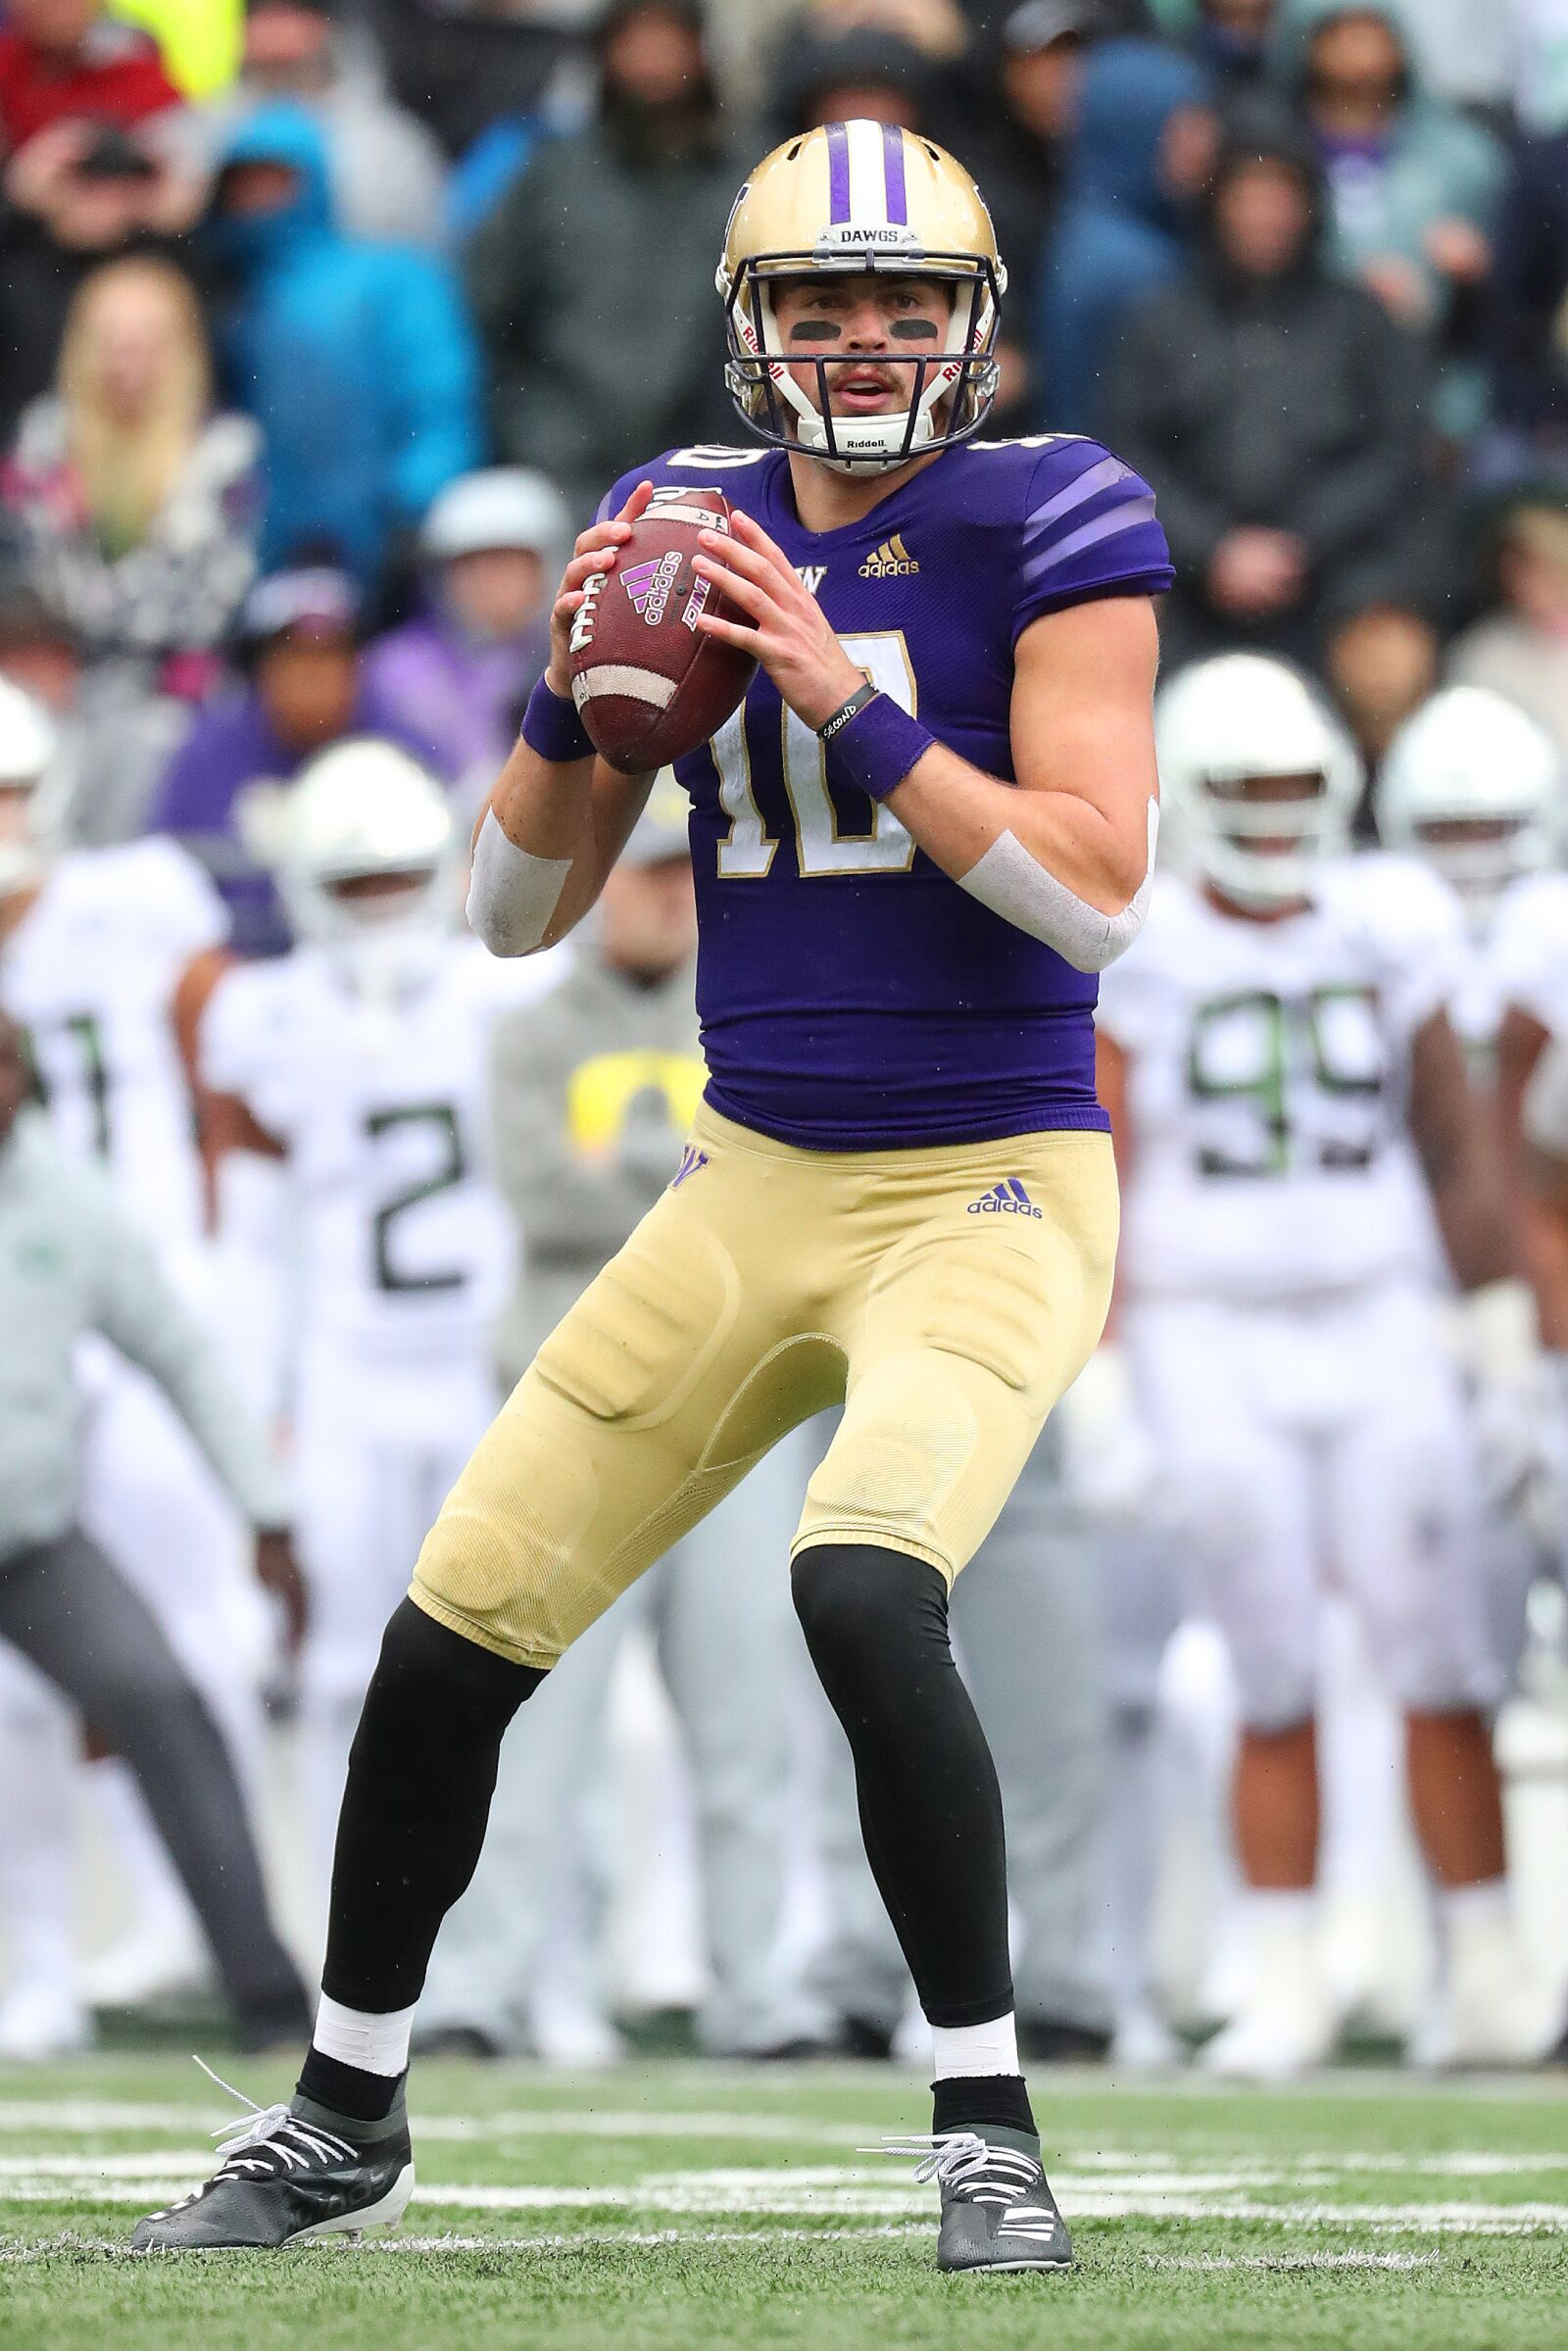 Washington football is so close, the shift is happening